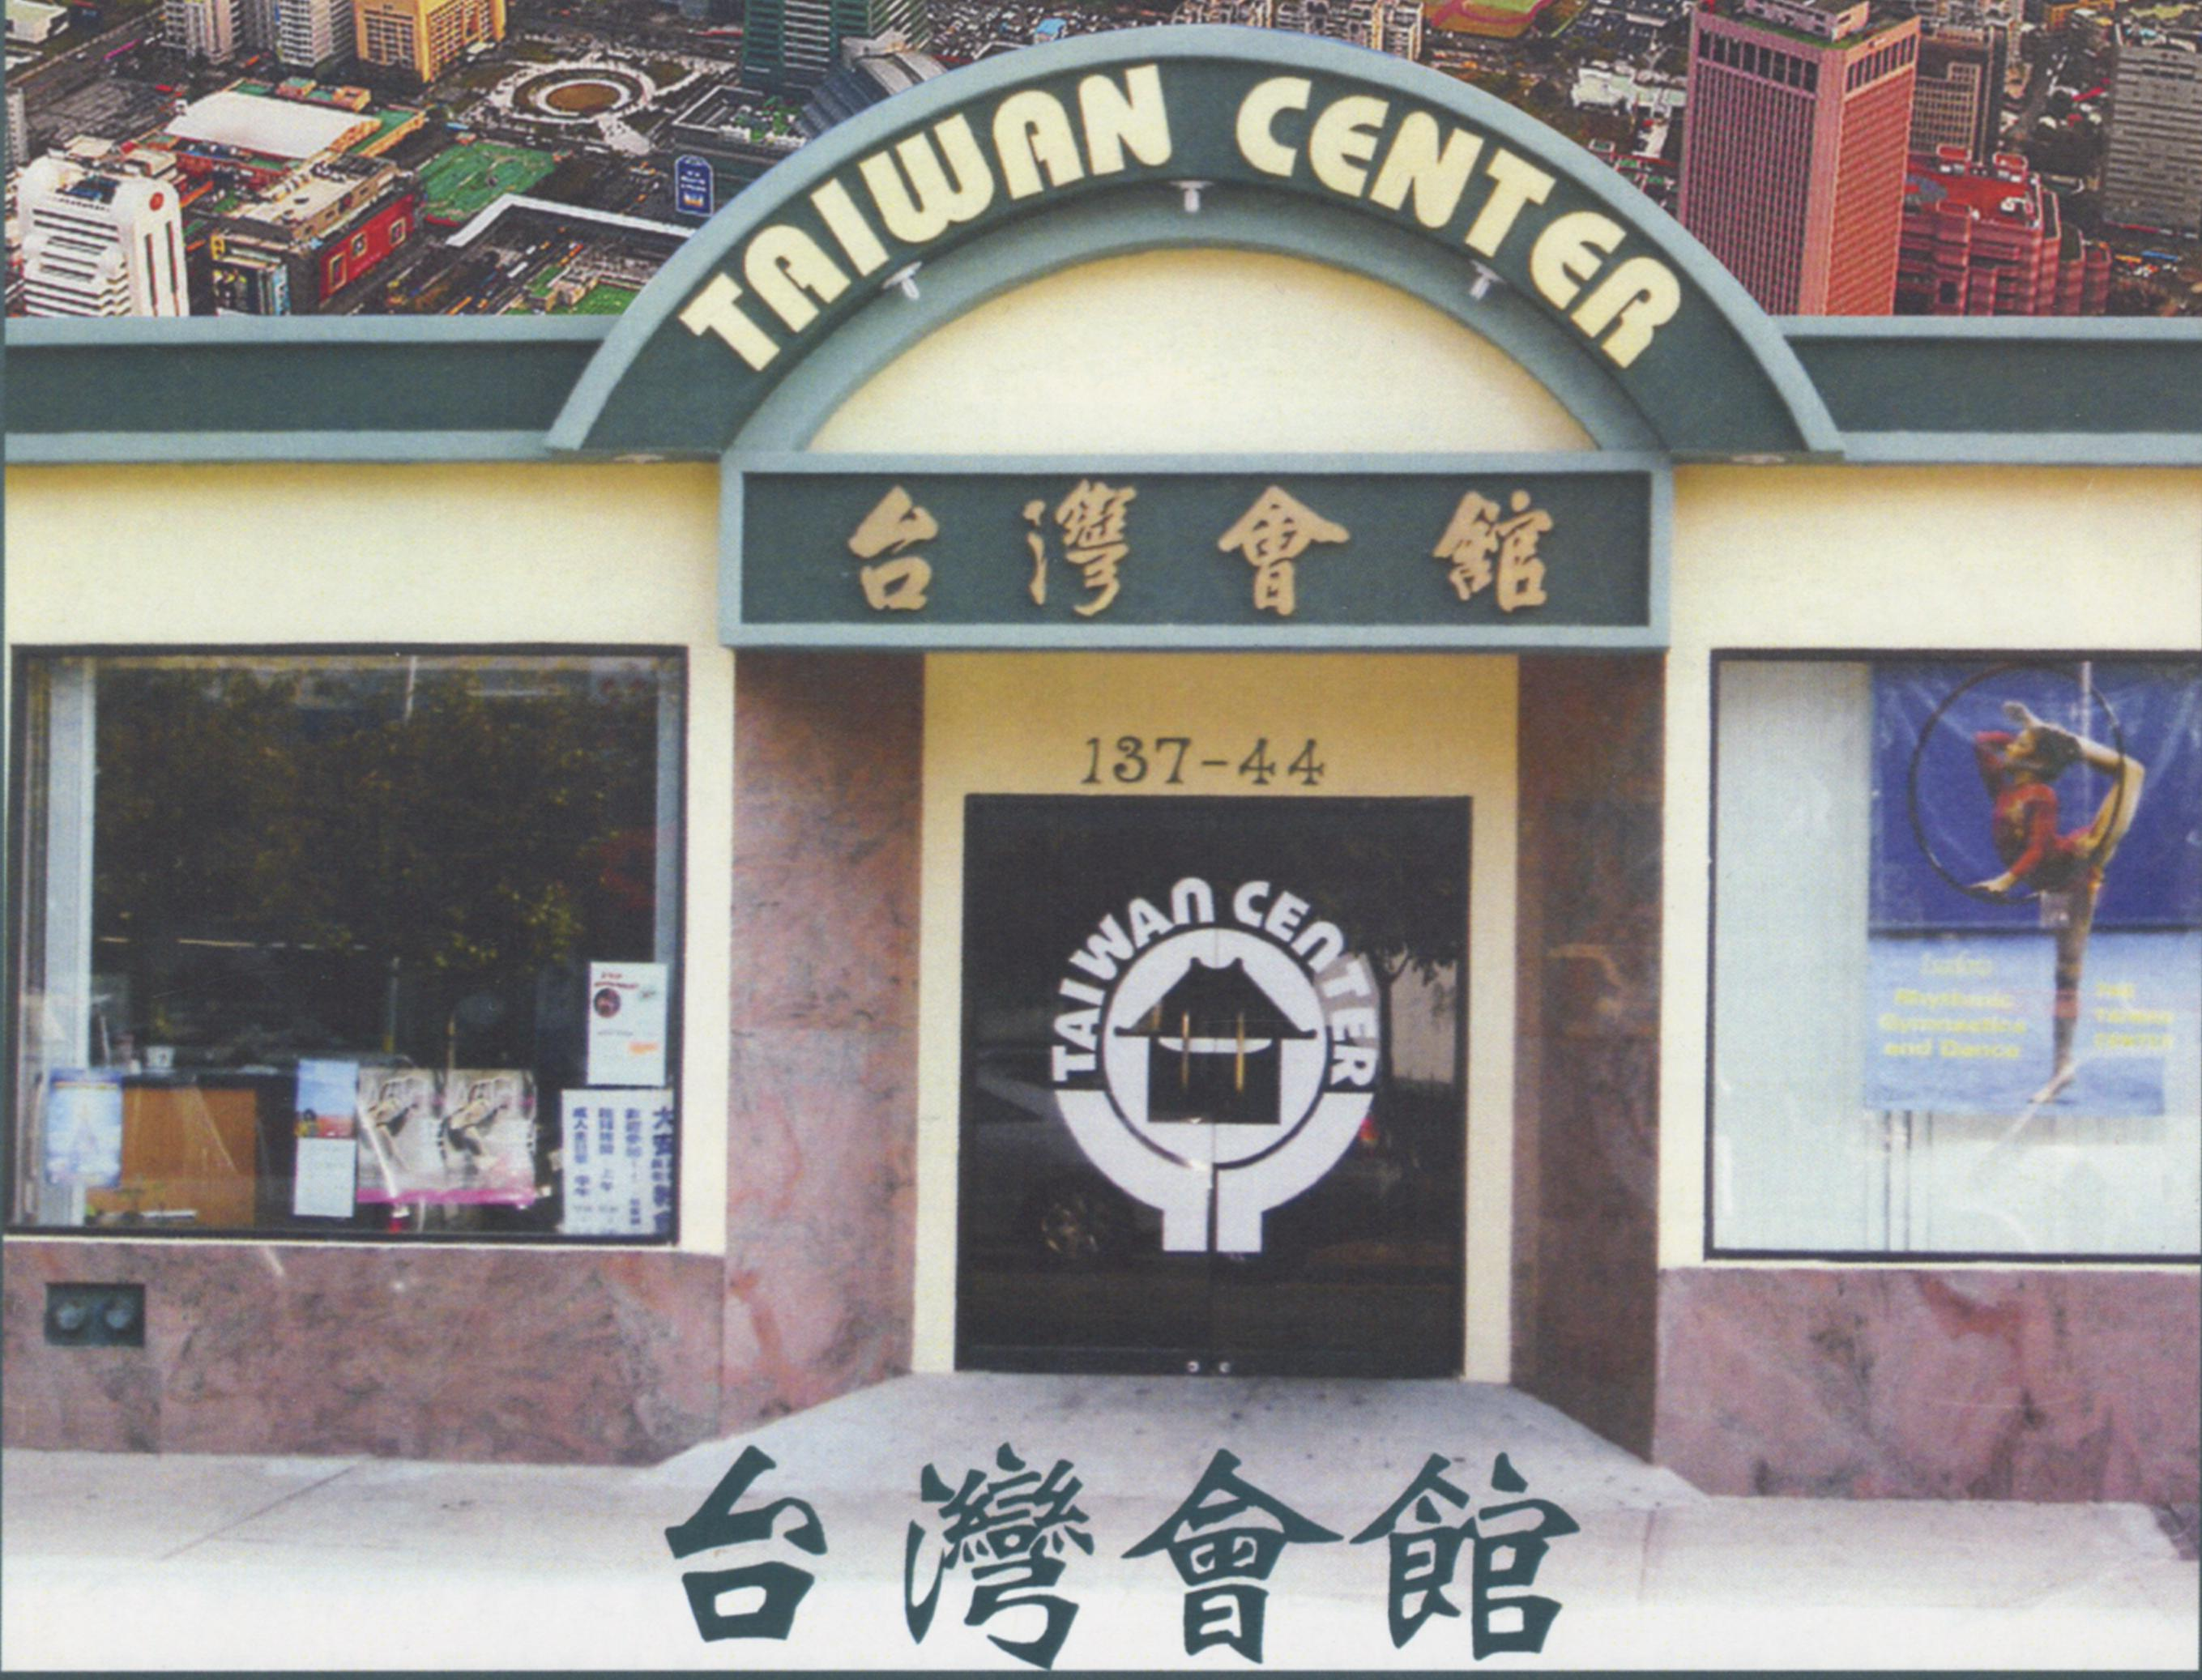 Taiwan Center-New York(台灣會館-紐約)